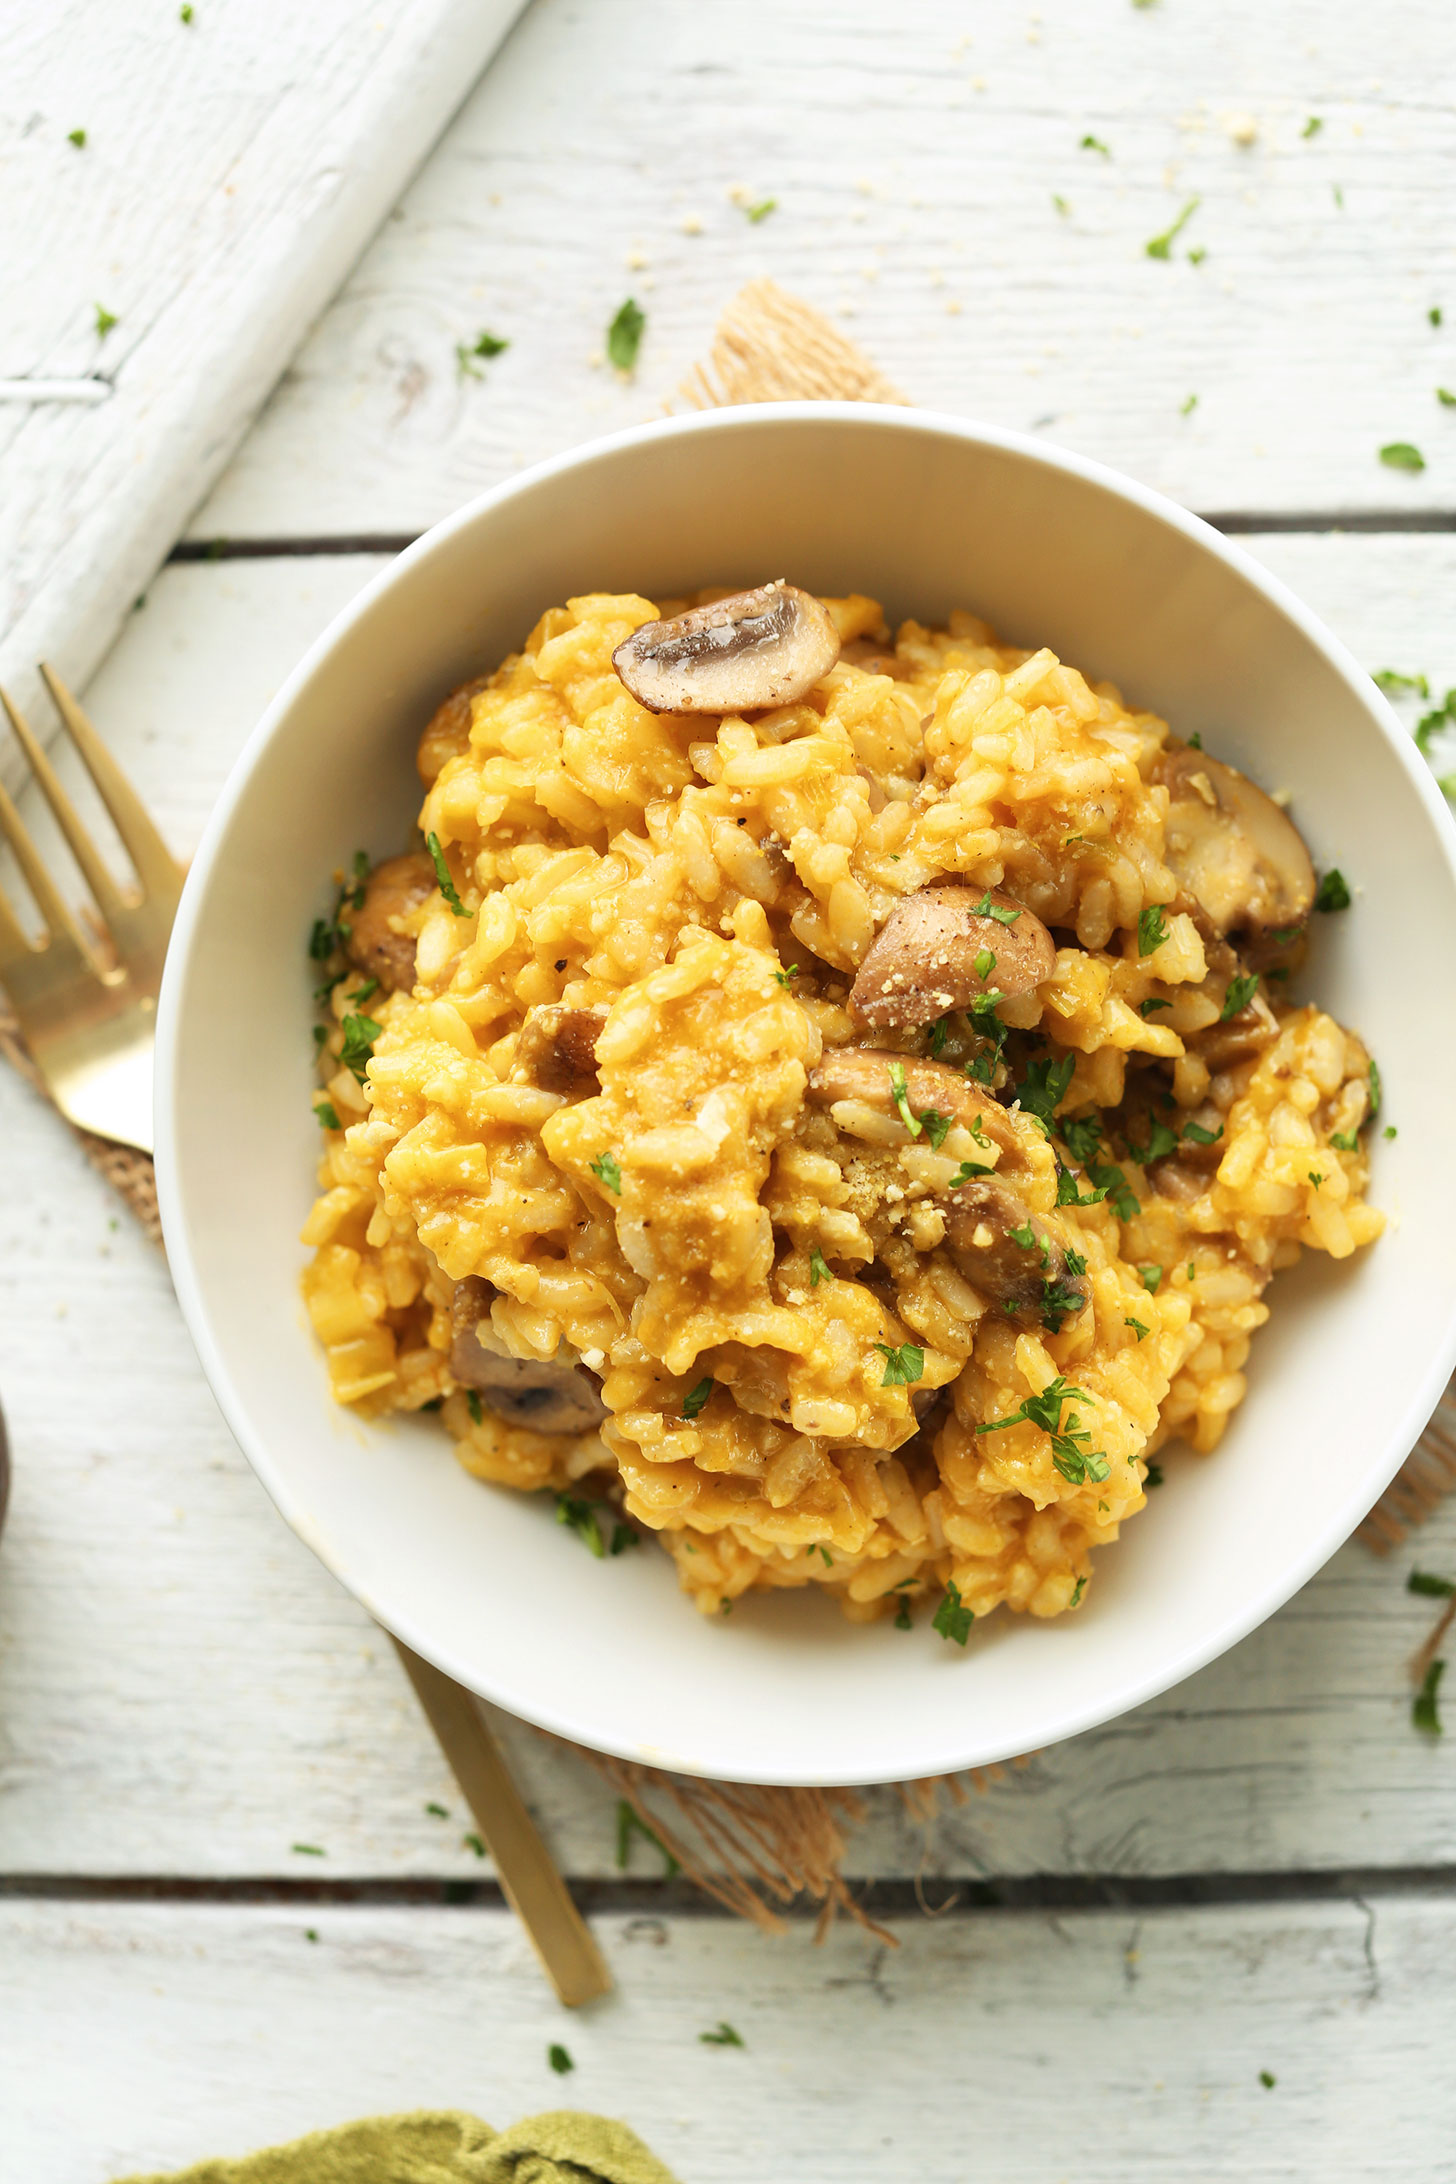 Bowl of our Risotto with Mushrooms and Leeks recipe for a comforting vegan dinner